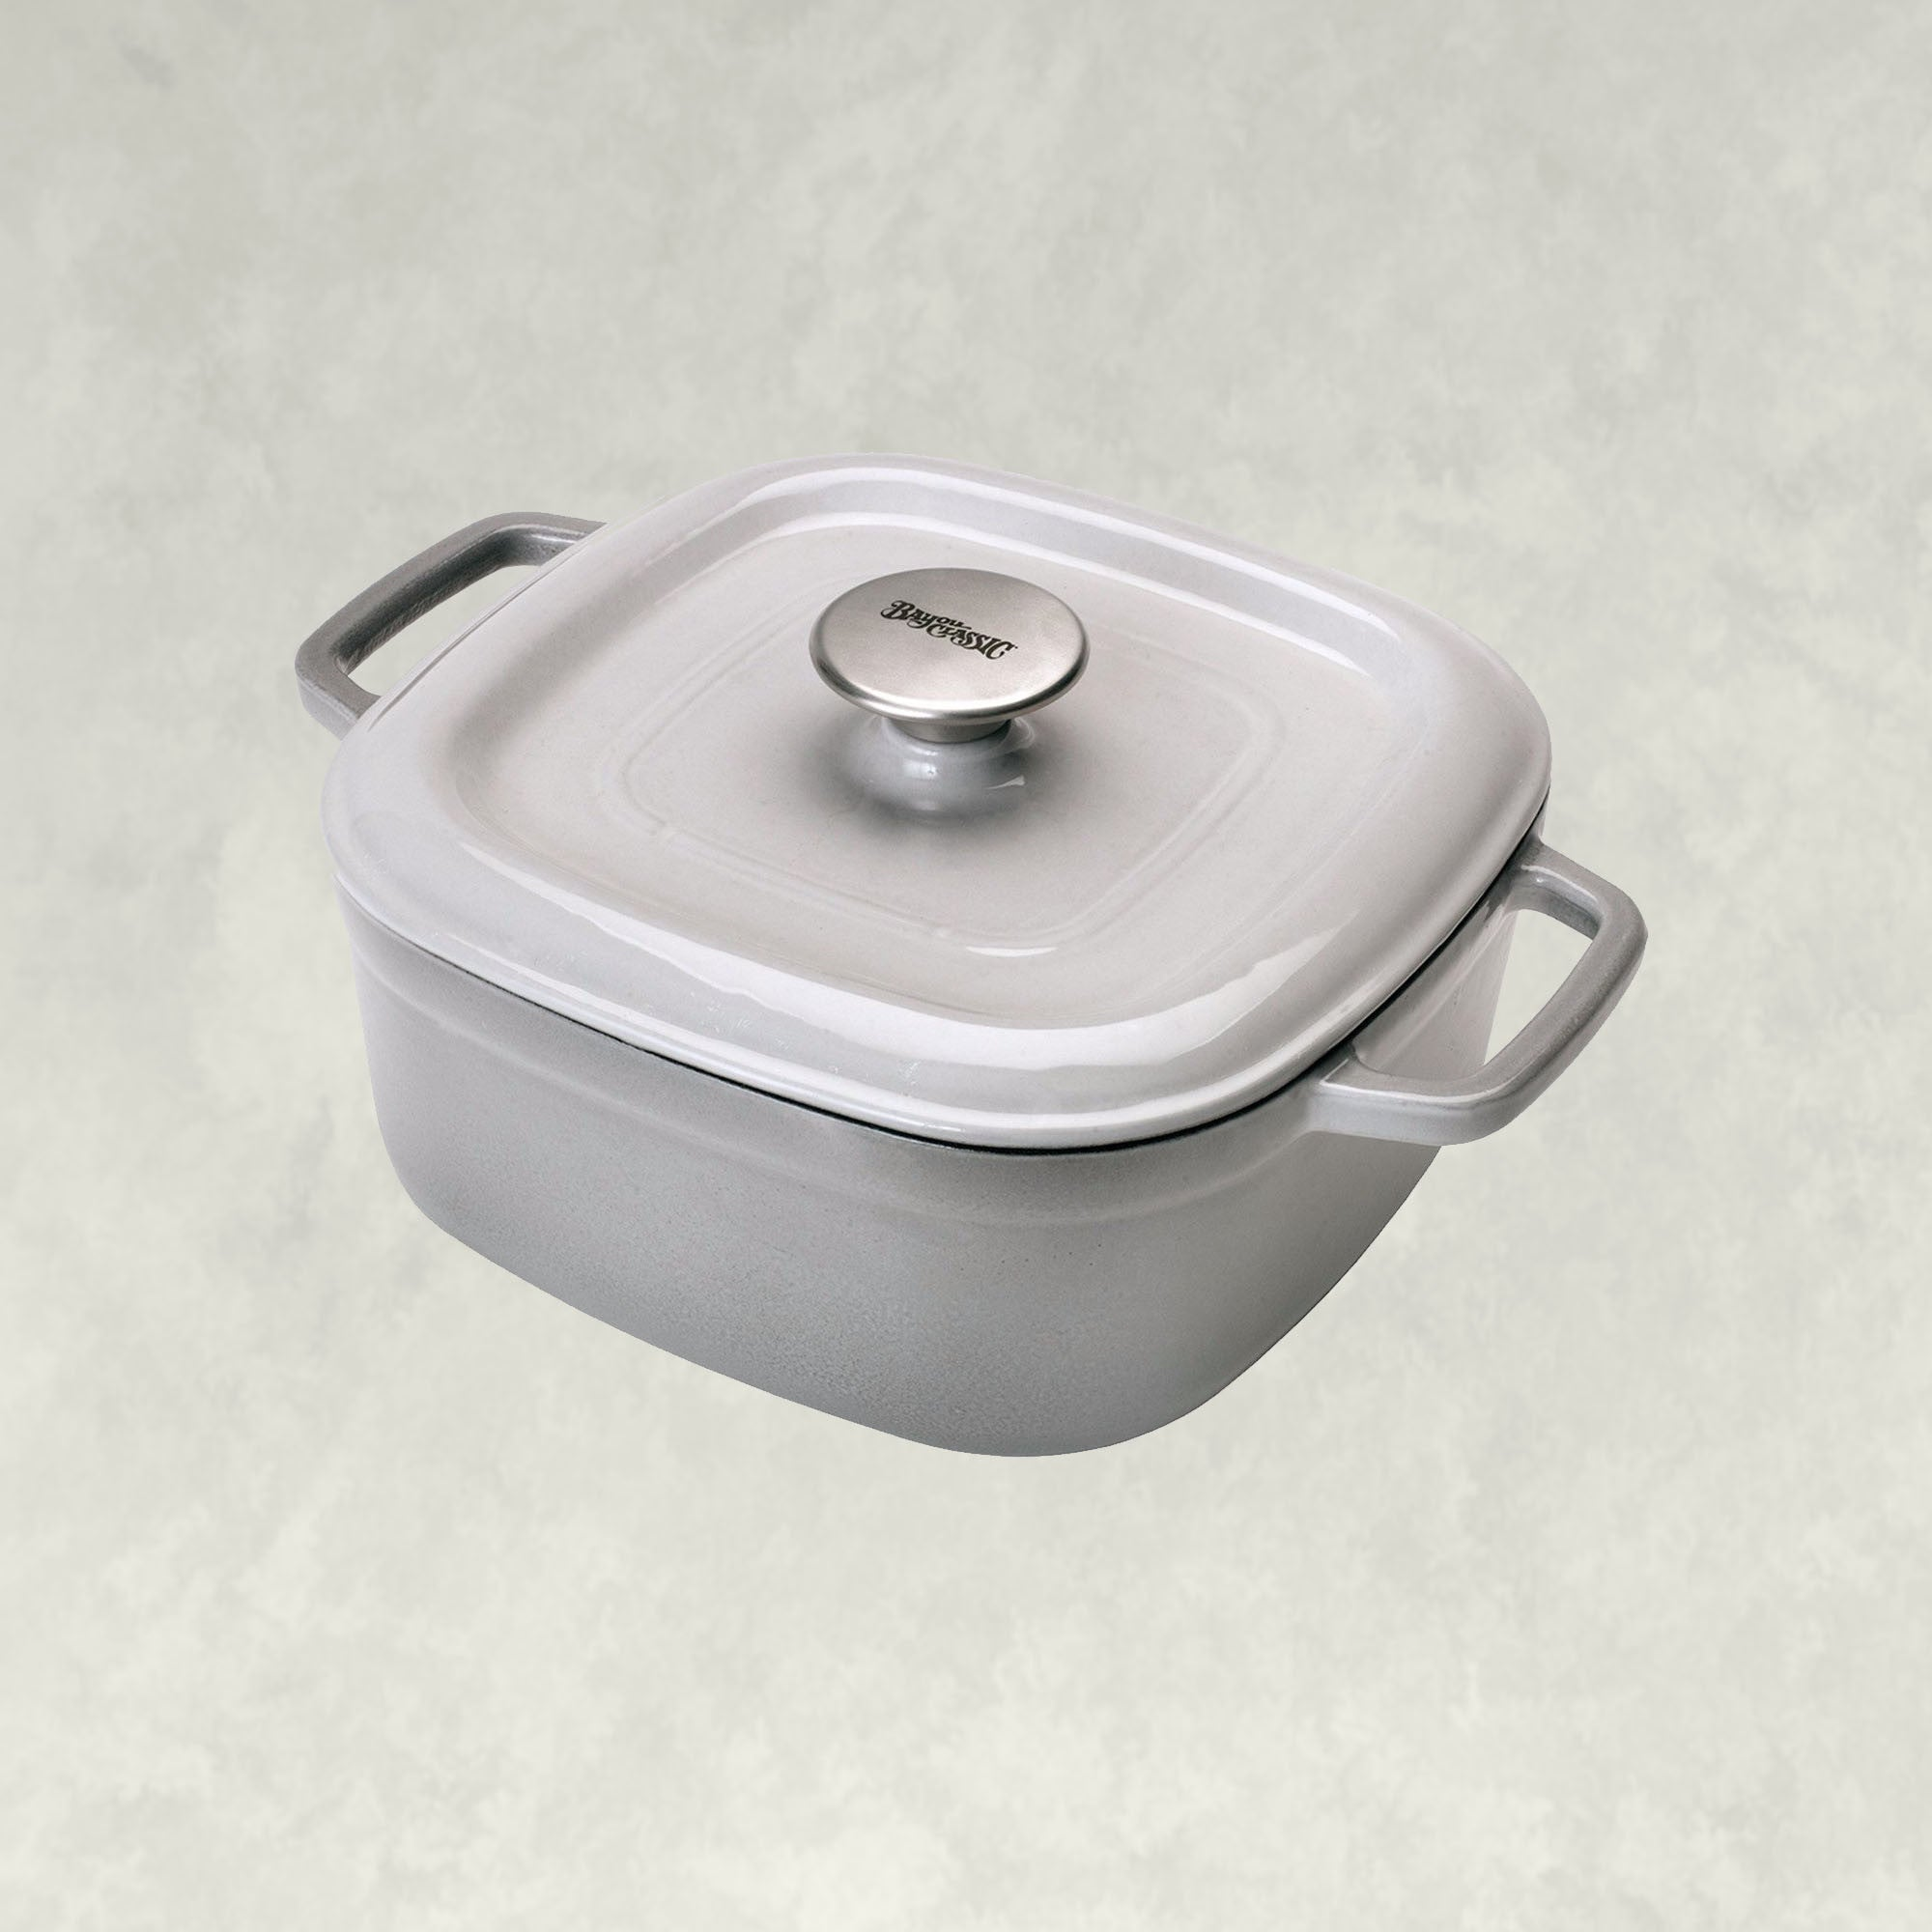 4-qt Enameled Covered Casserole, Weathered Grey